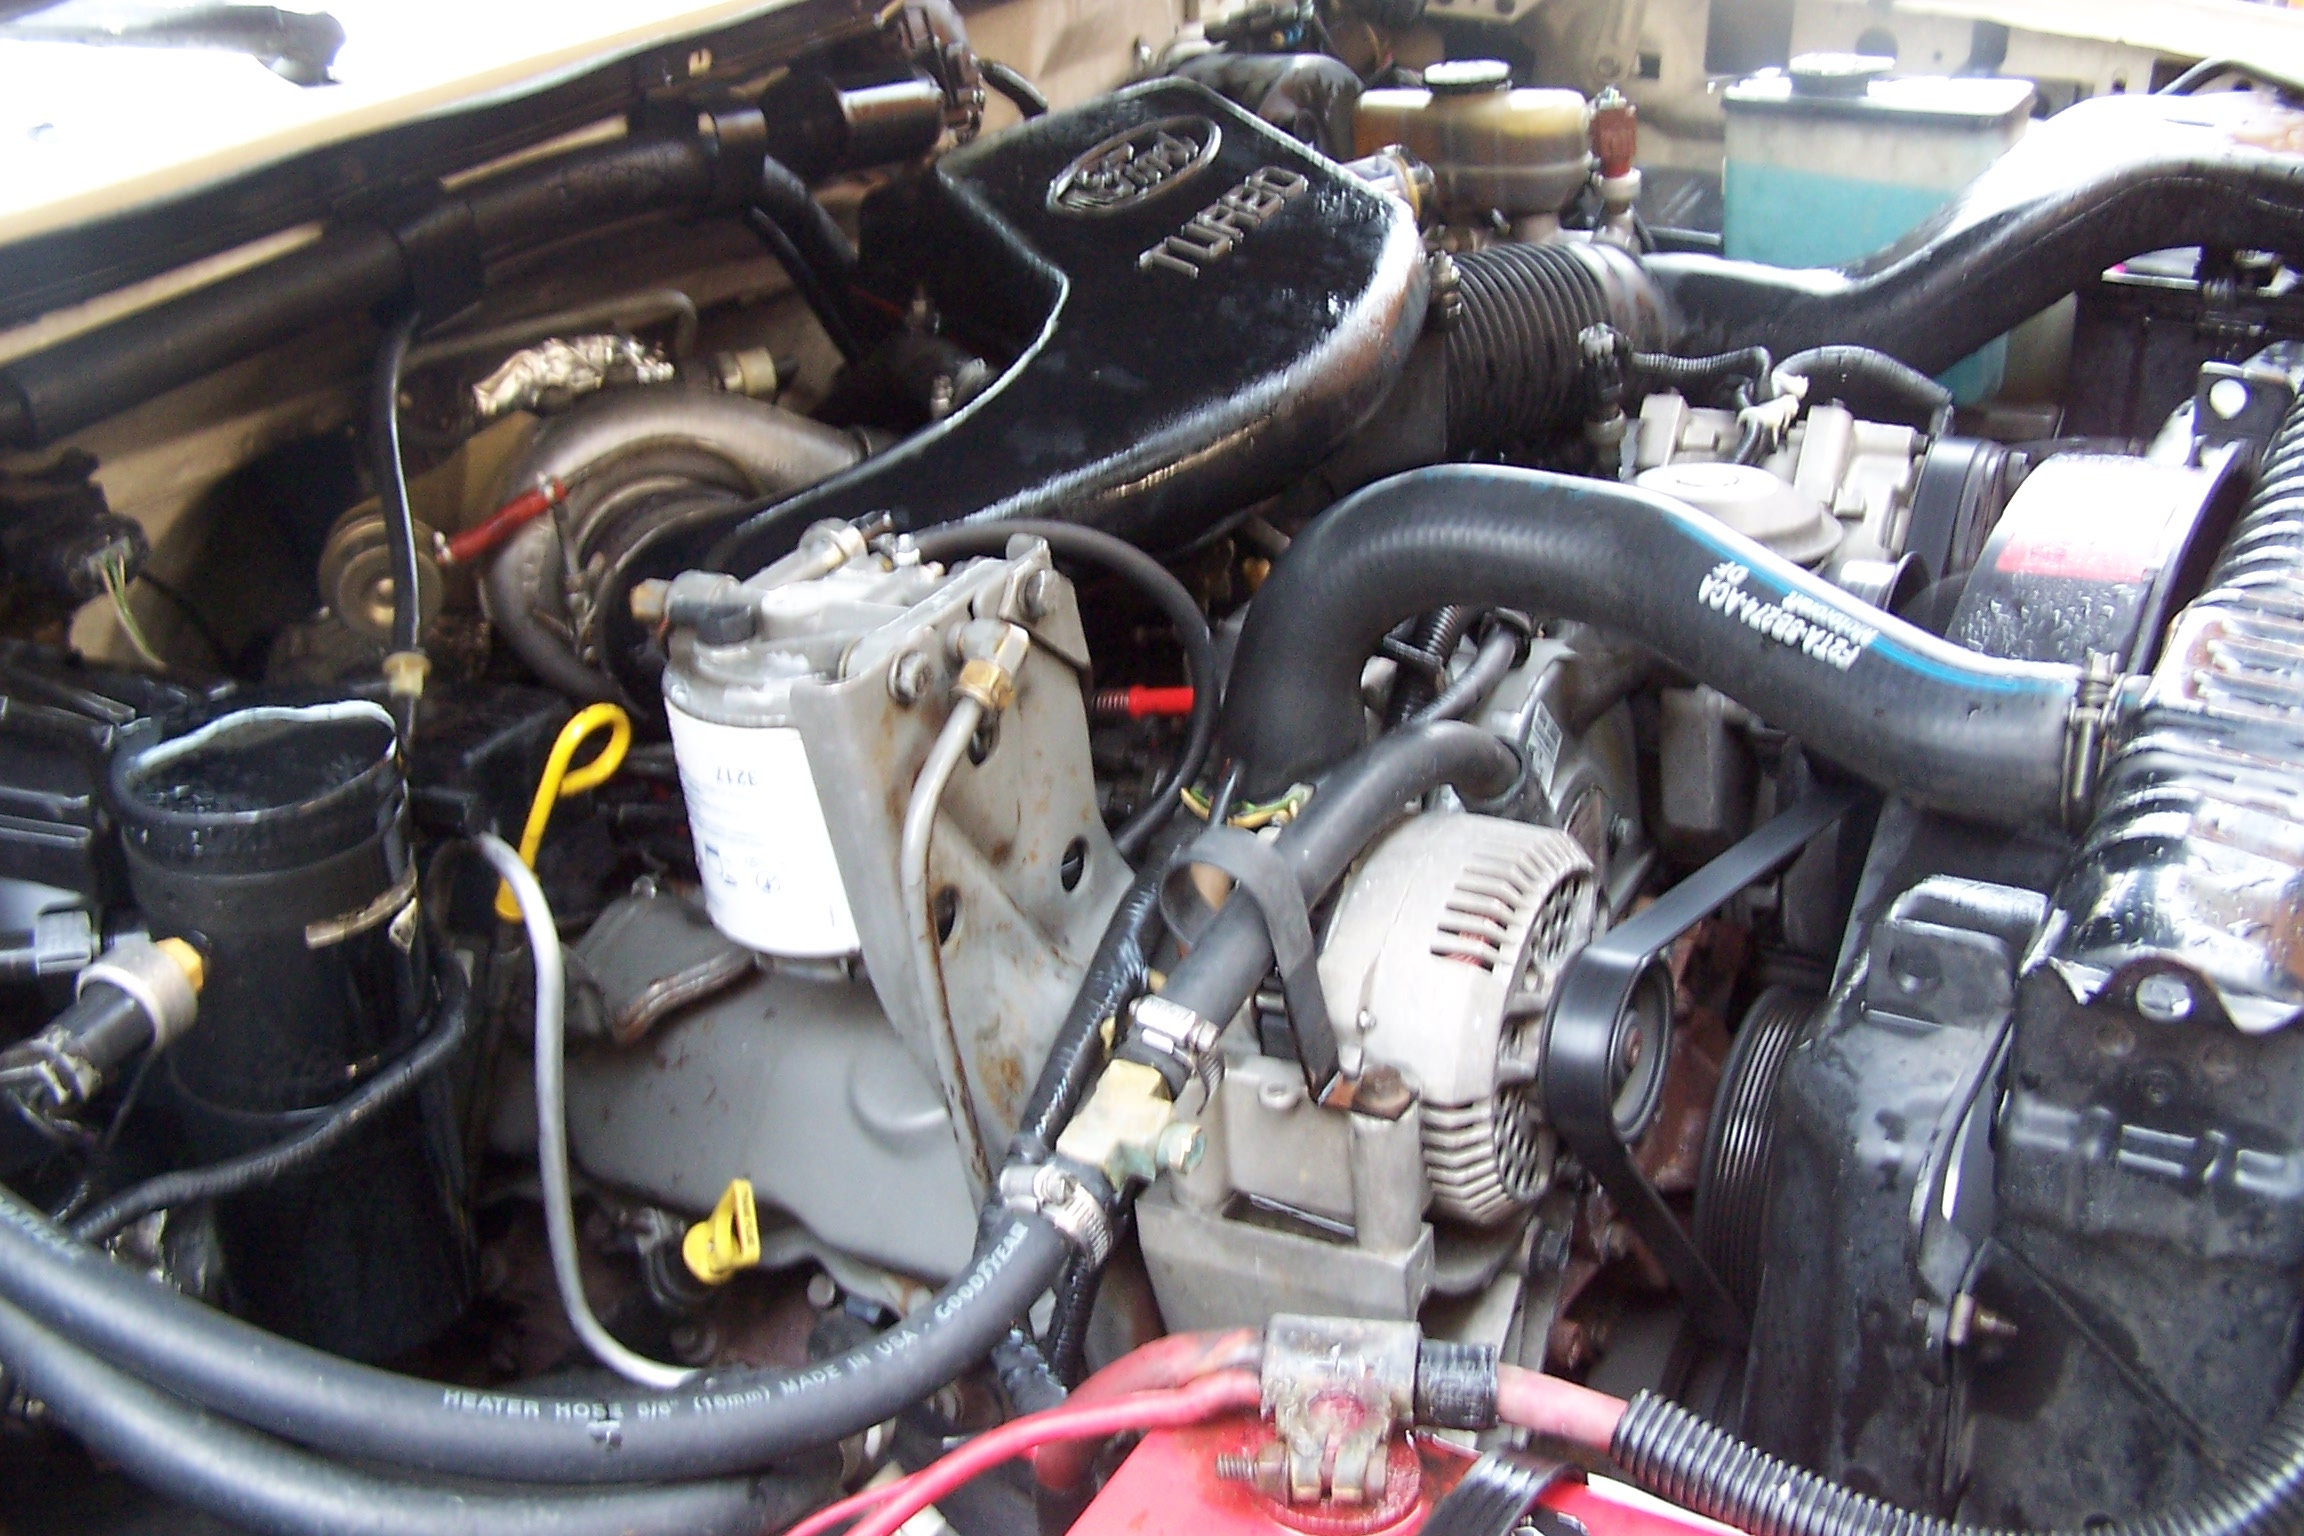 Sel On 7 3 Sel Engine Wiring Harness Replacement 7 3 Idi Fuel Filter  Sel Engine Wiring Harness on 7.3 engine harness, 7.3 alternator harness, 7.3 fuel harness, 7.3 wire harness,